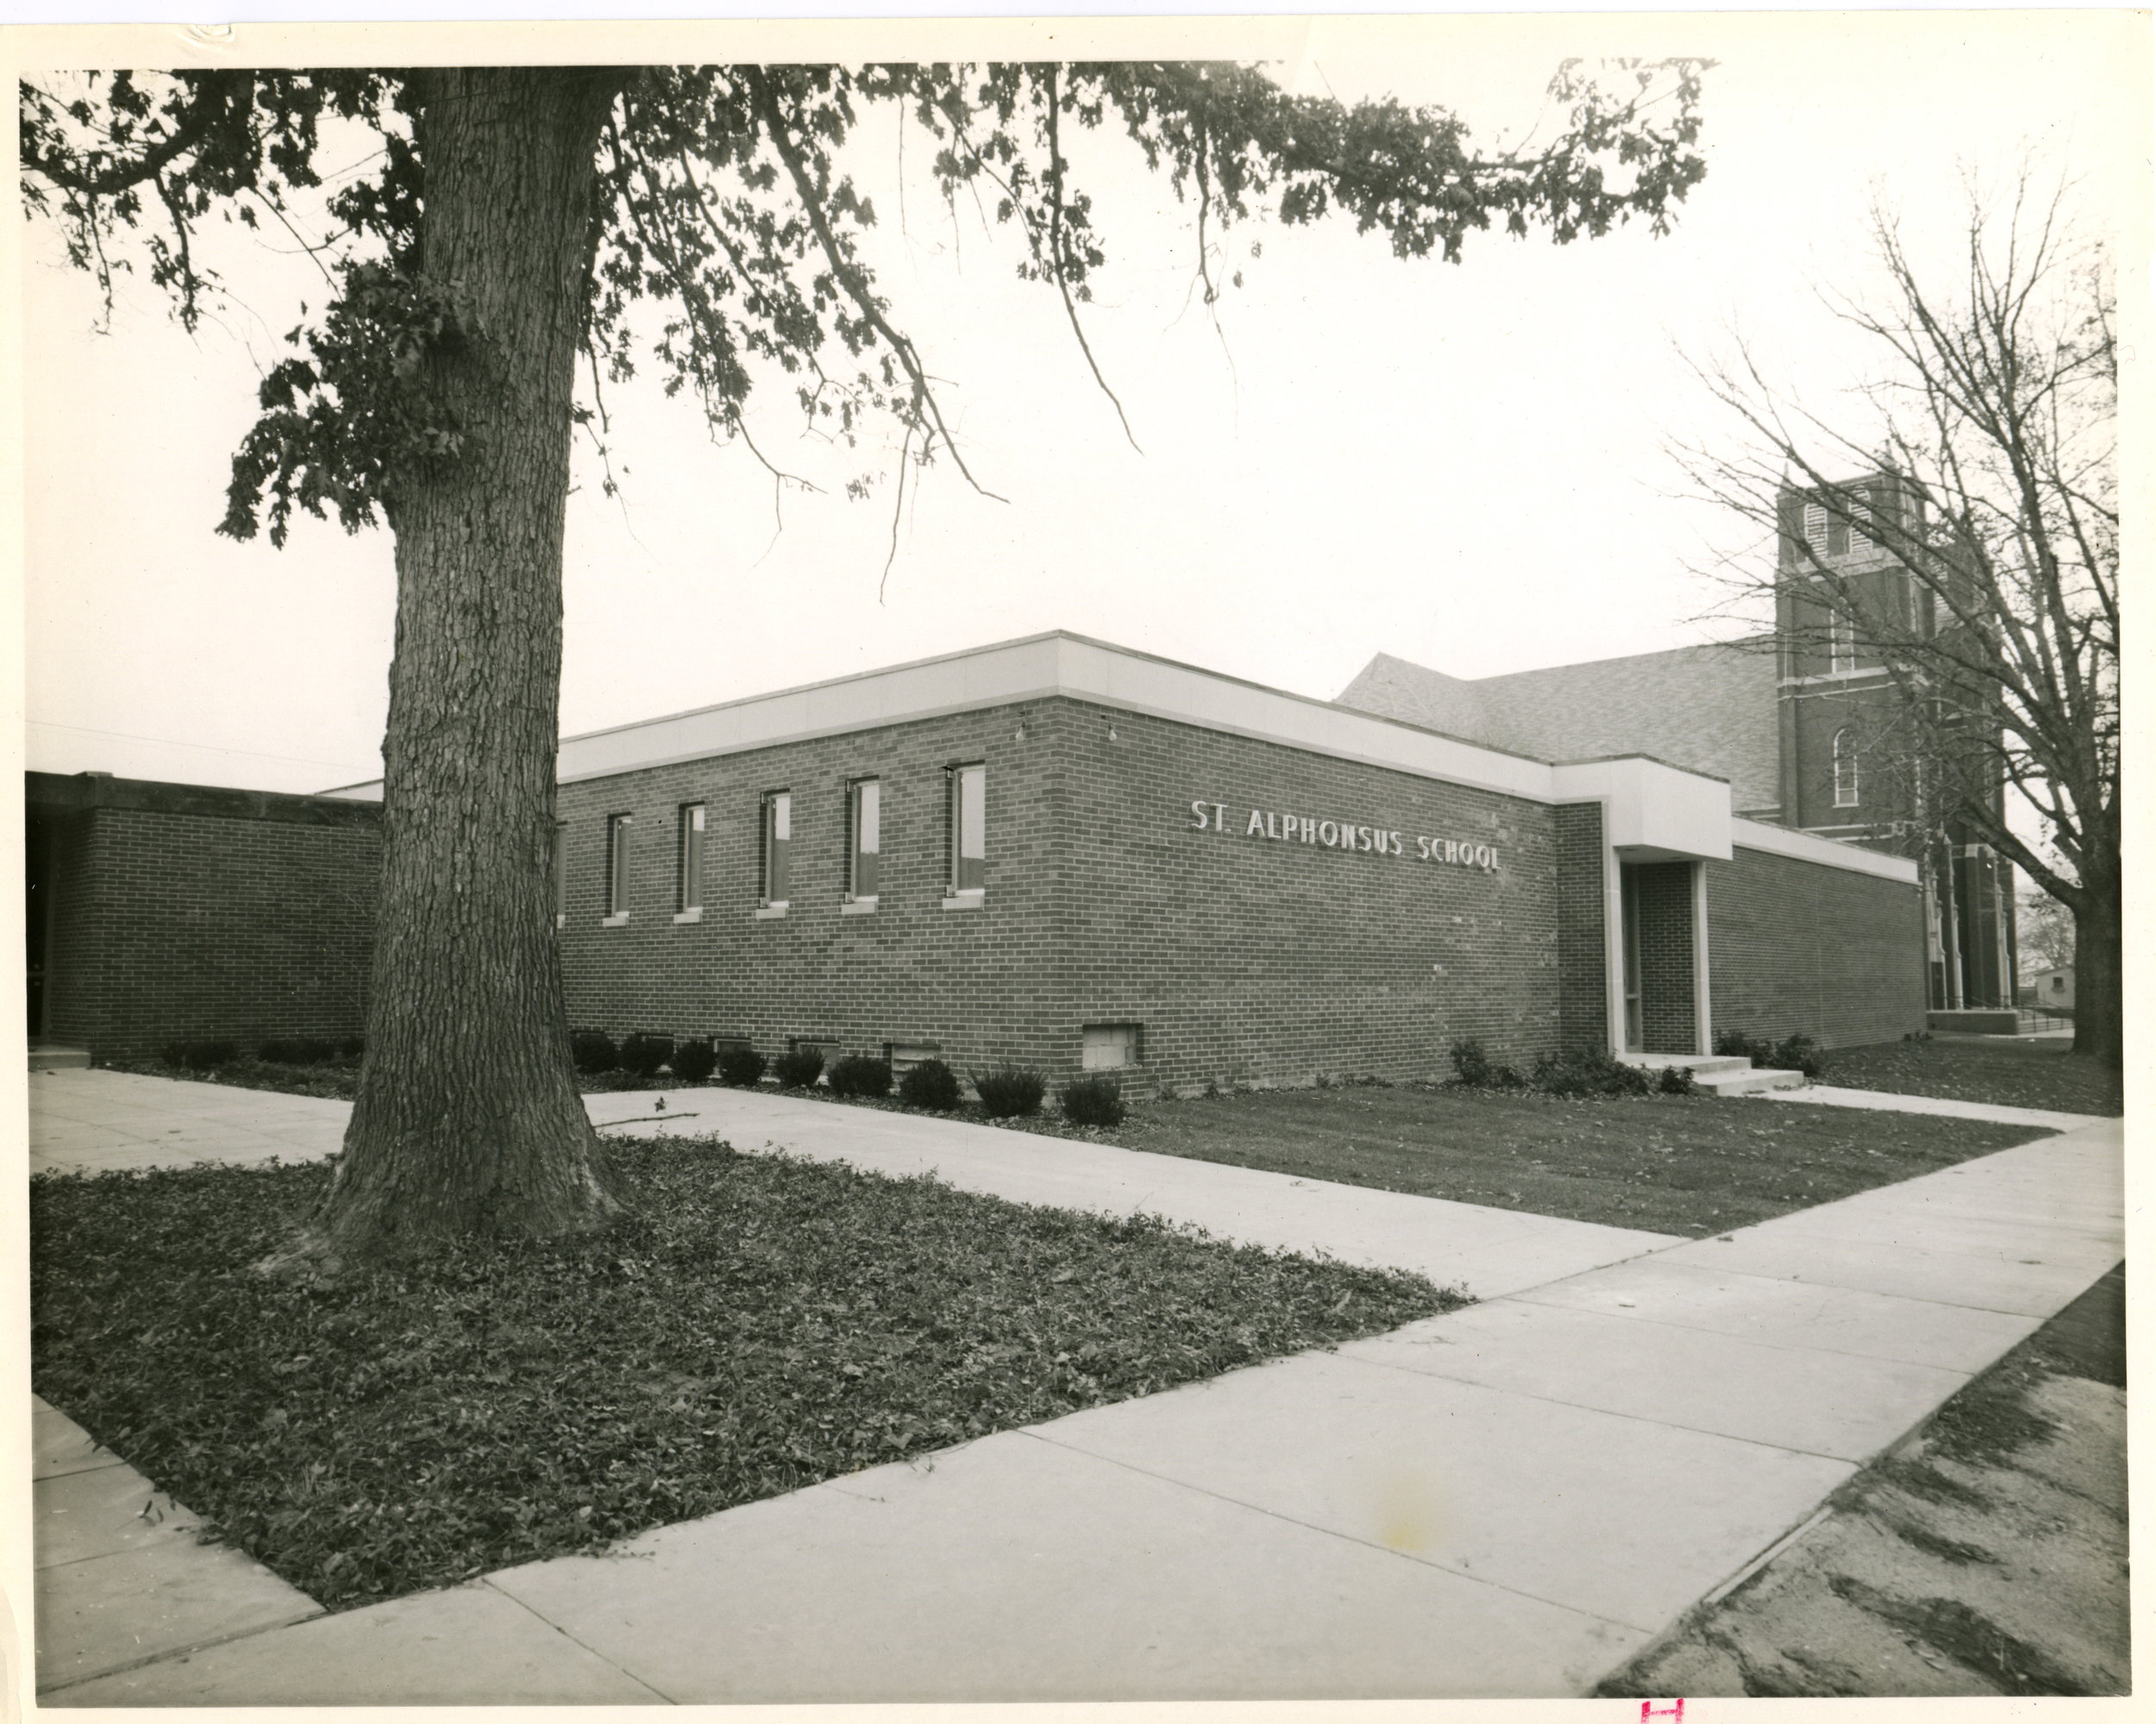 1964 - Enrollment grew to over 900 students and a new 40,000 square foot school building was constructed. The new school had 24 classrooms with approximately 37 students per classroom. The students were taught by 17 Dominican Sisters and 9 lay teachers.